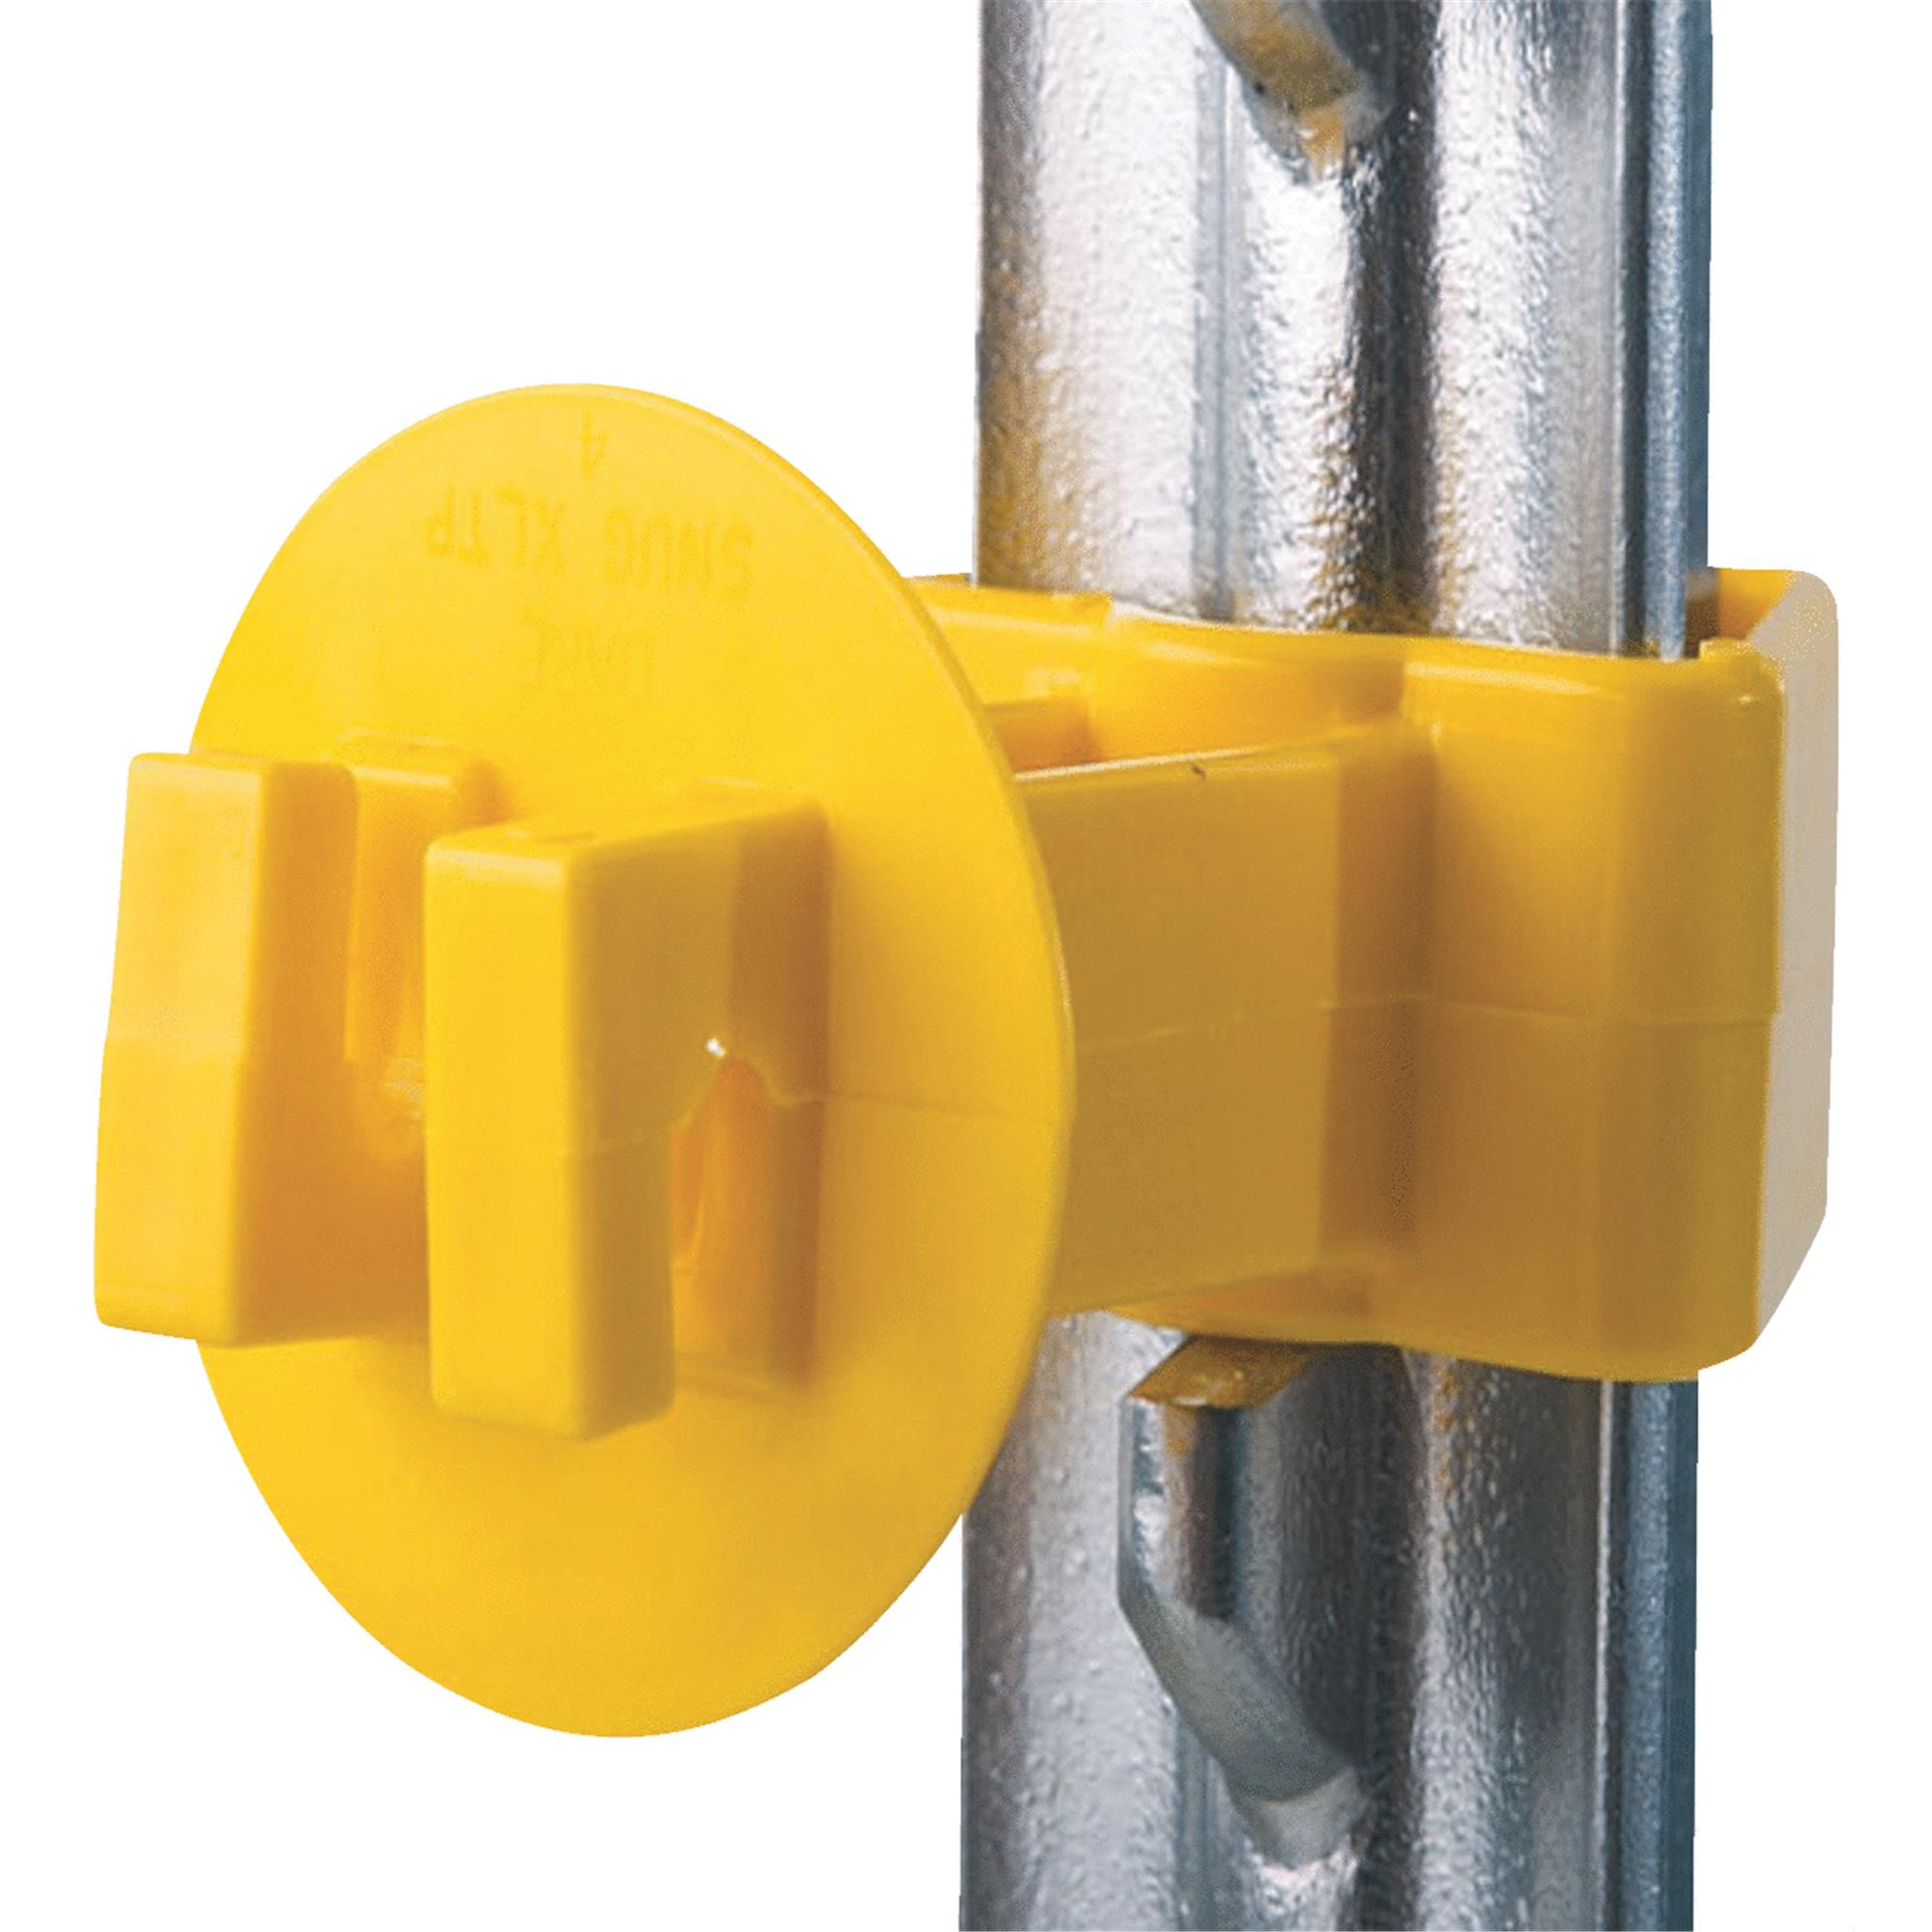 SNUG EXTRA LENGTH T-POST INSULATOR YELLOW 25 PACK